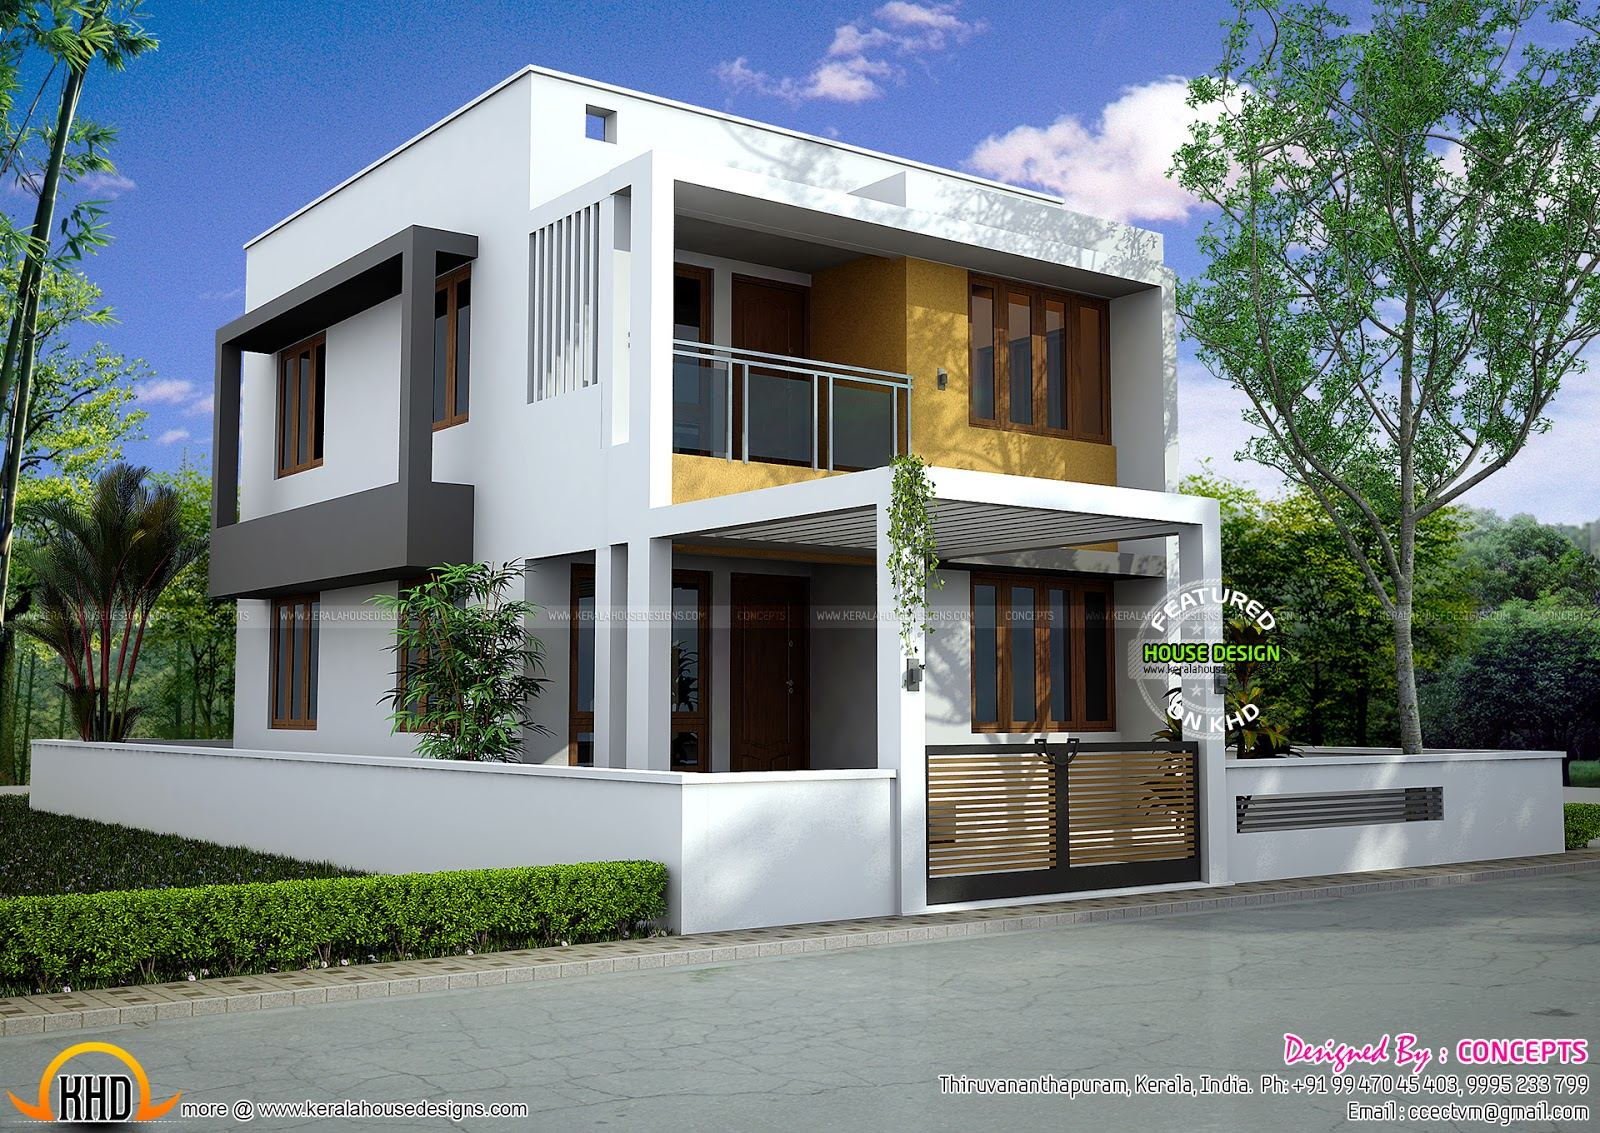 Floor plan of modern 3 bedroom house kerala home design for Home floor designs image